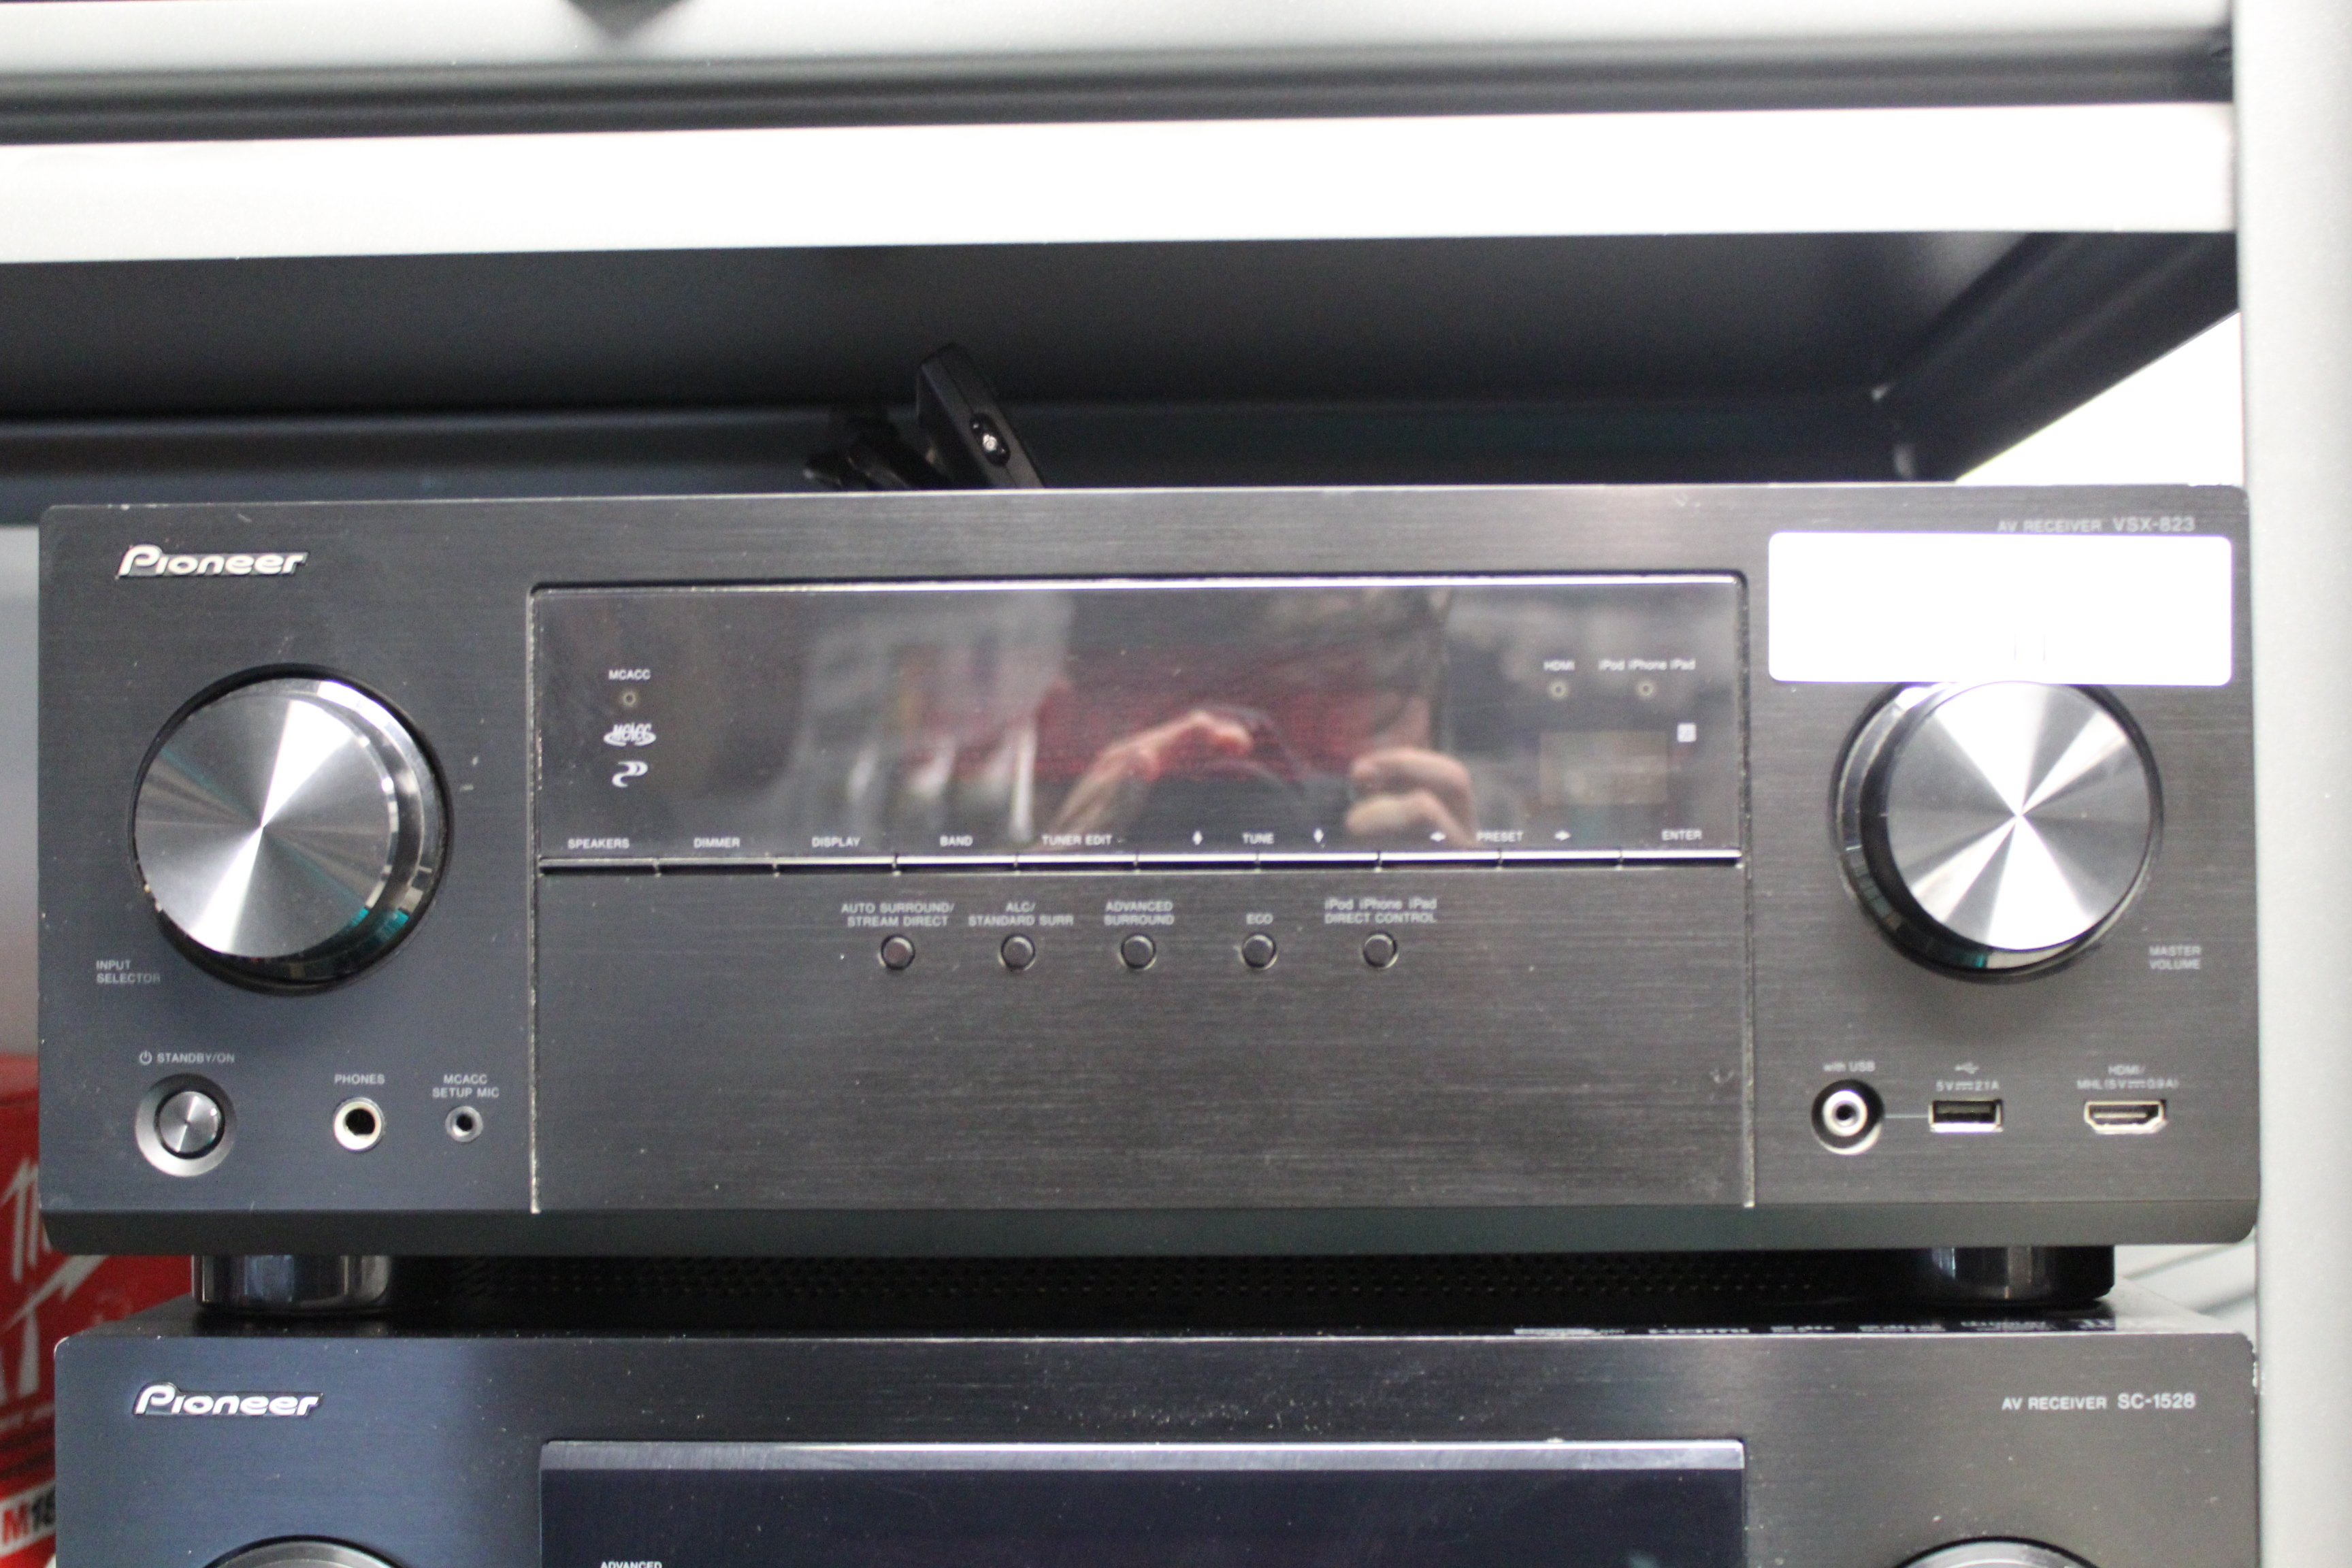 Pioneer Amplifier Model VSX-823 HDMI with Remote